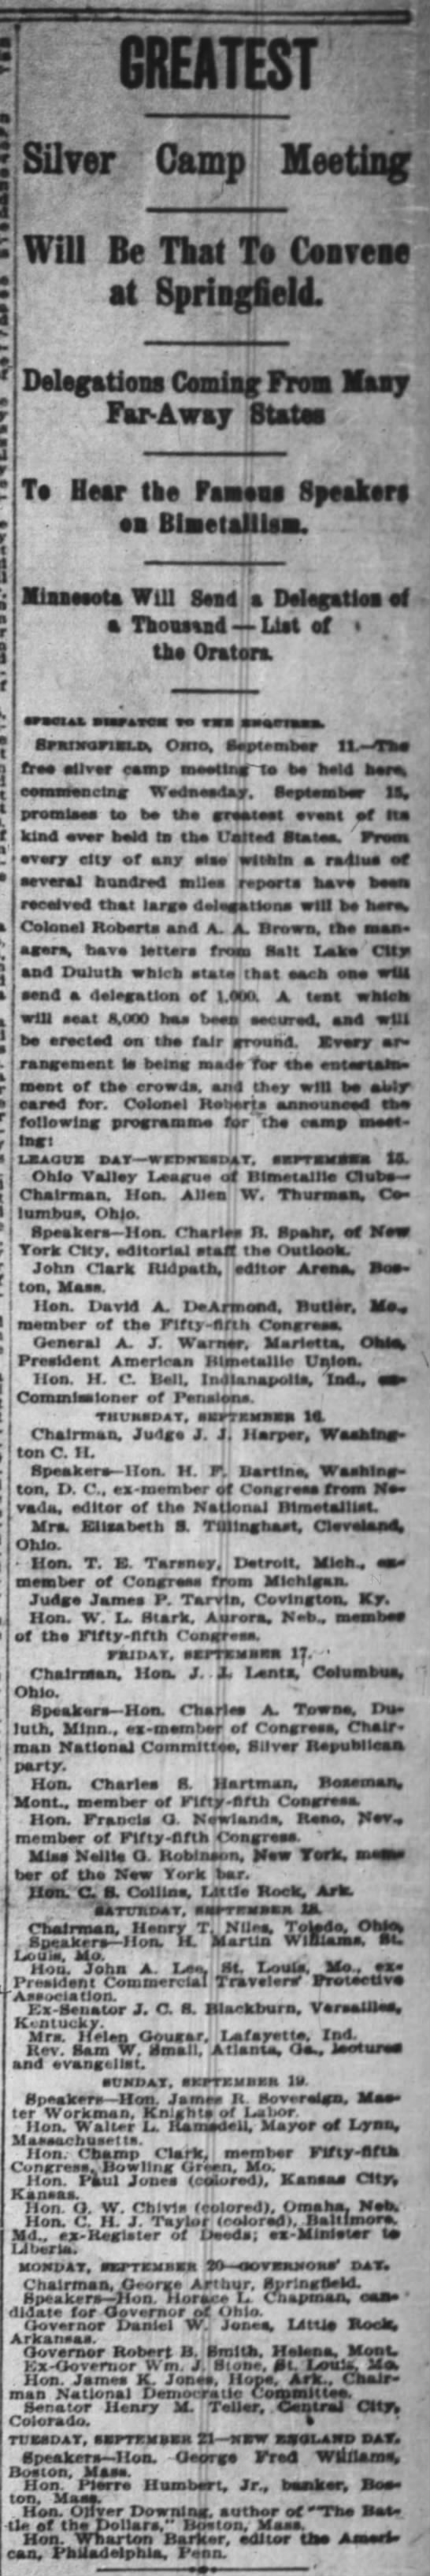 1897-09-12-CincinnatiEnquirer-p17-GreatestSilverCampMeeting -